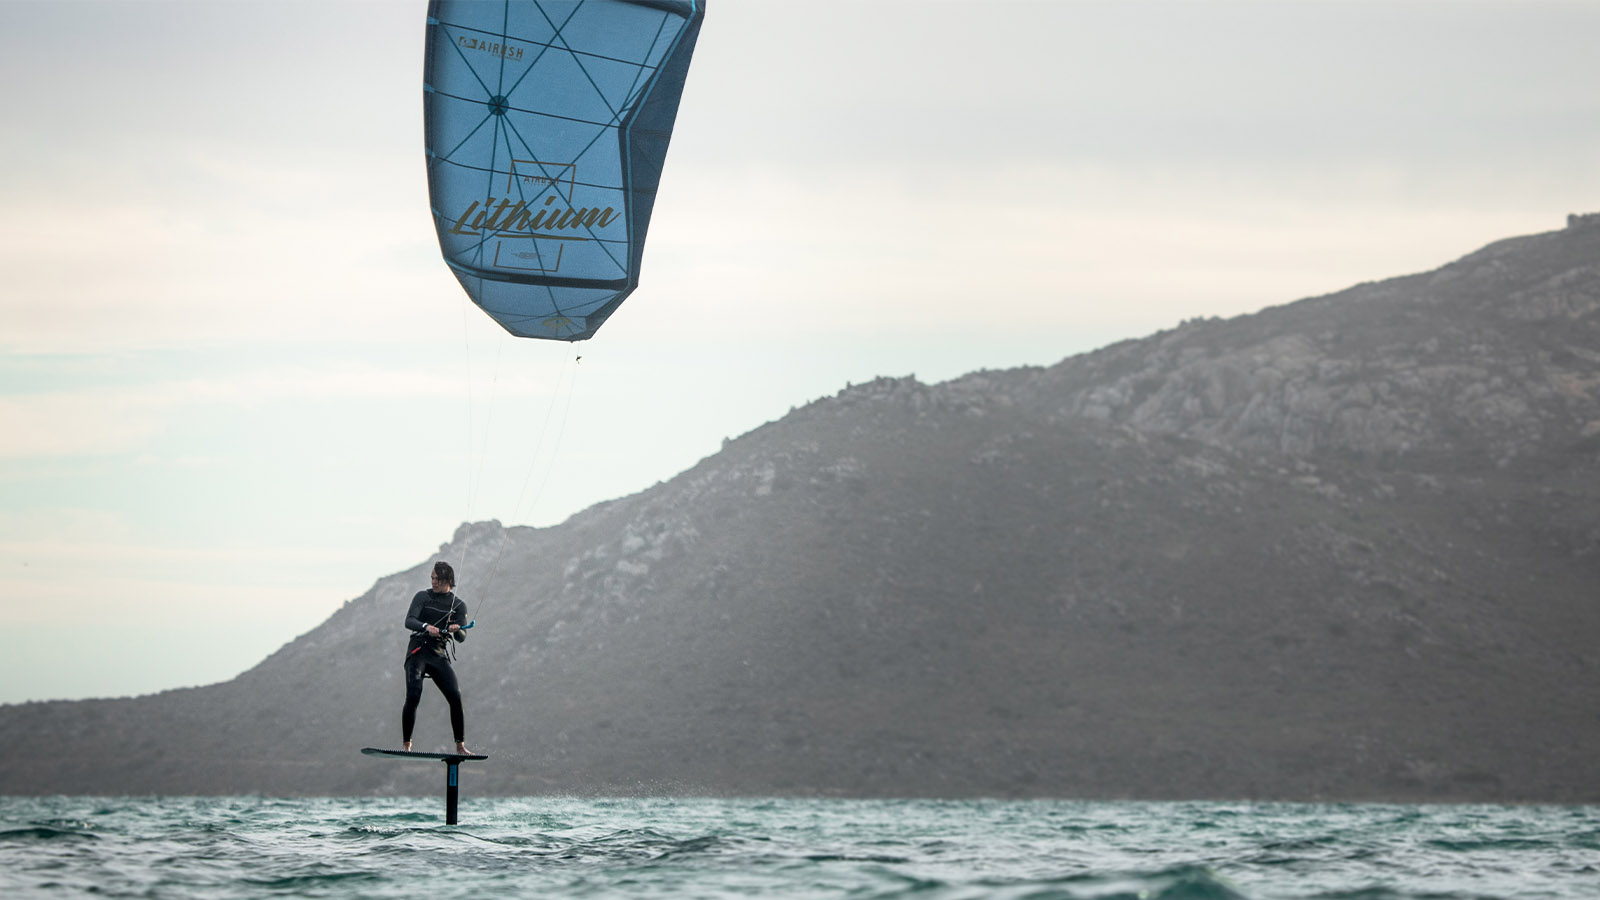 Airush 2020 Kiteboards